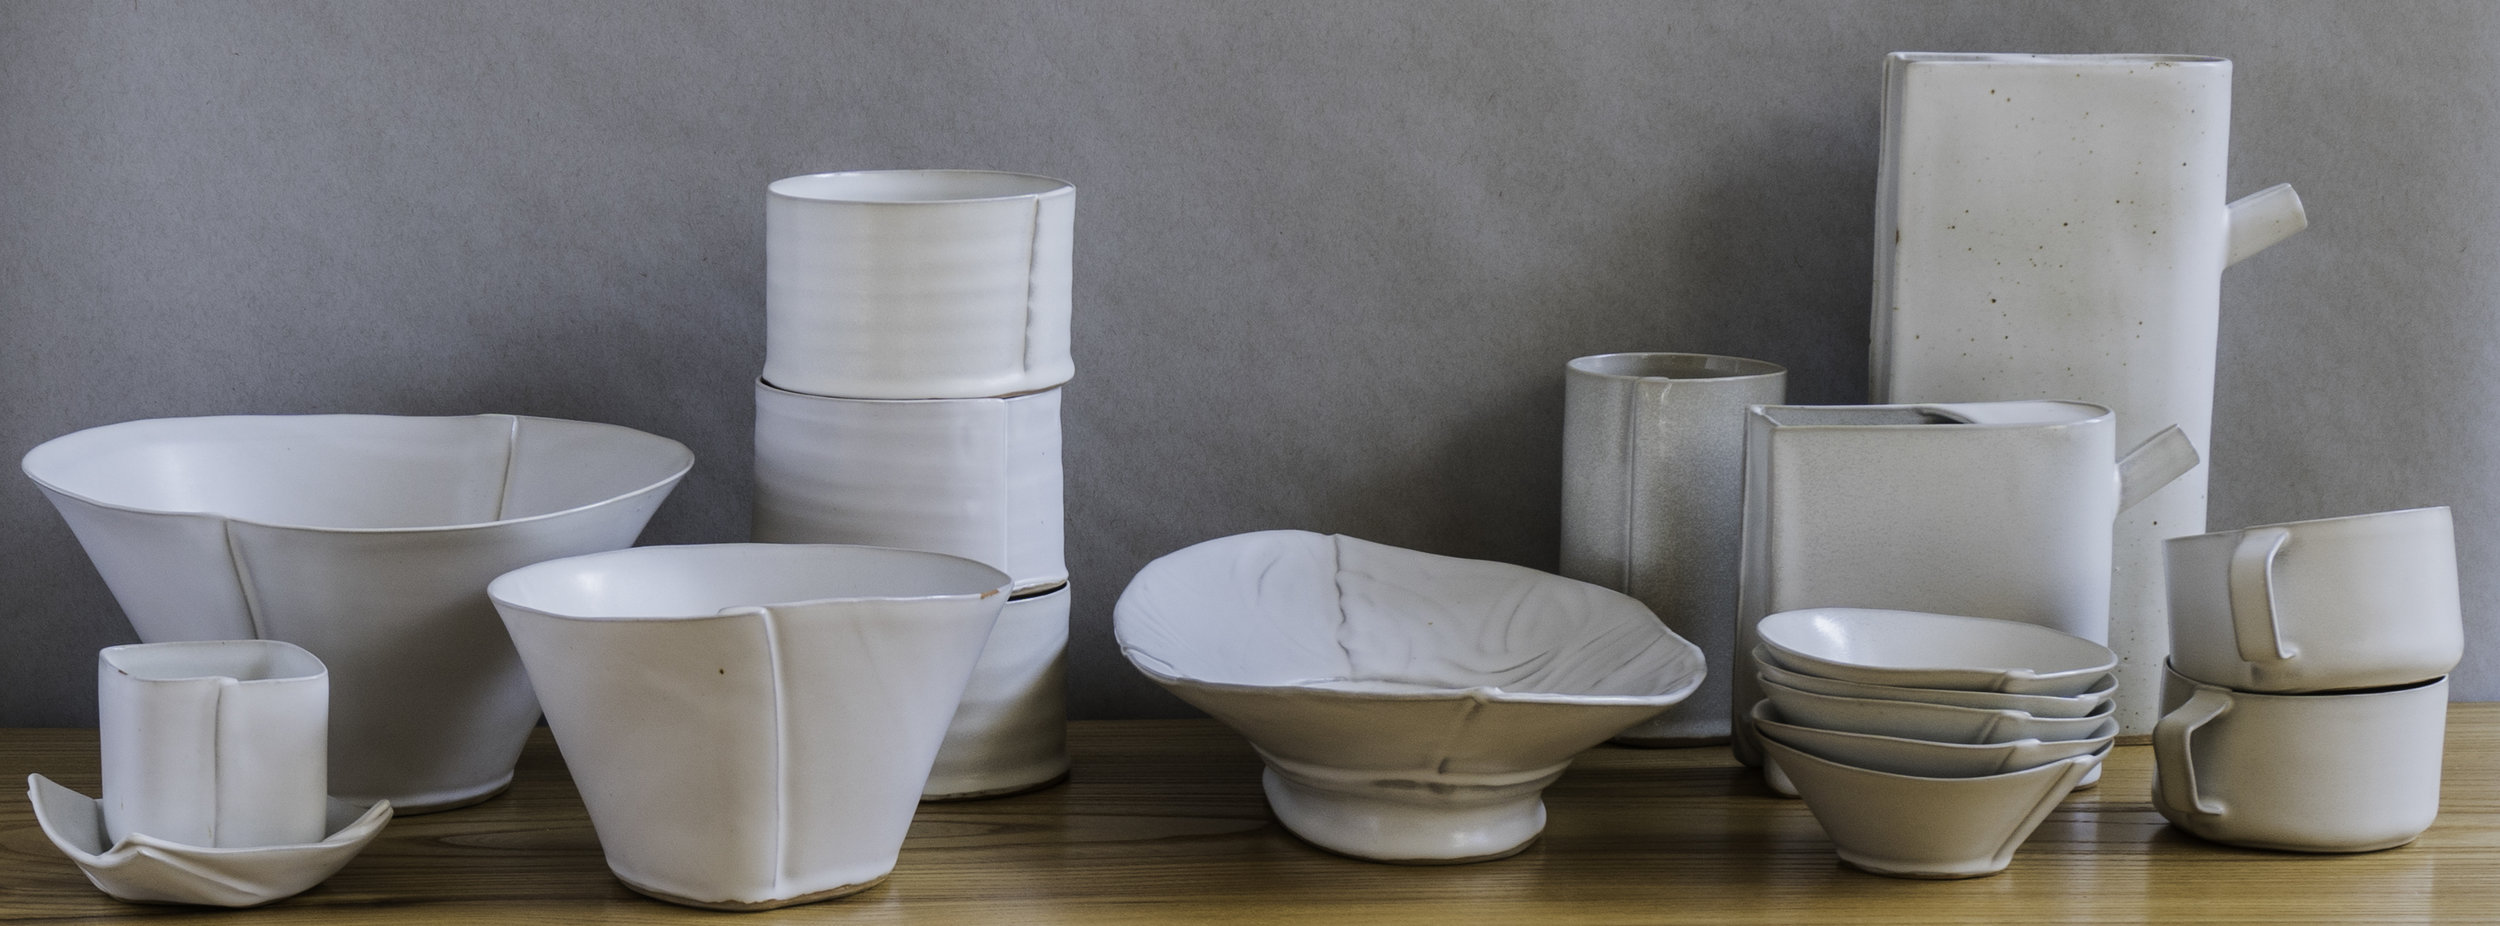 ifpottery-6.jpg